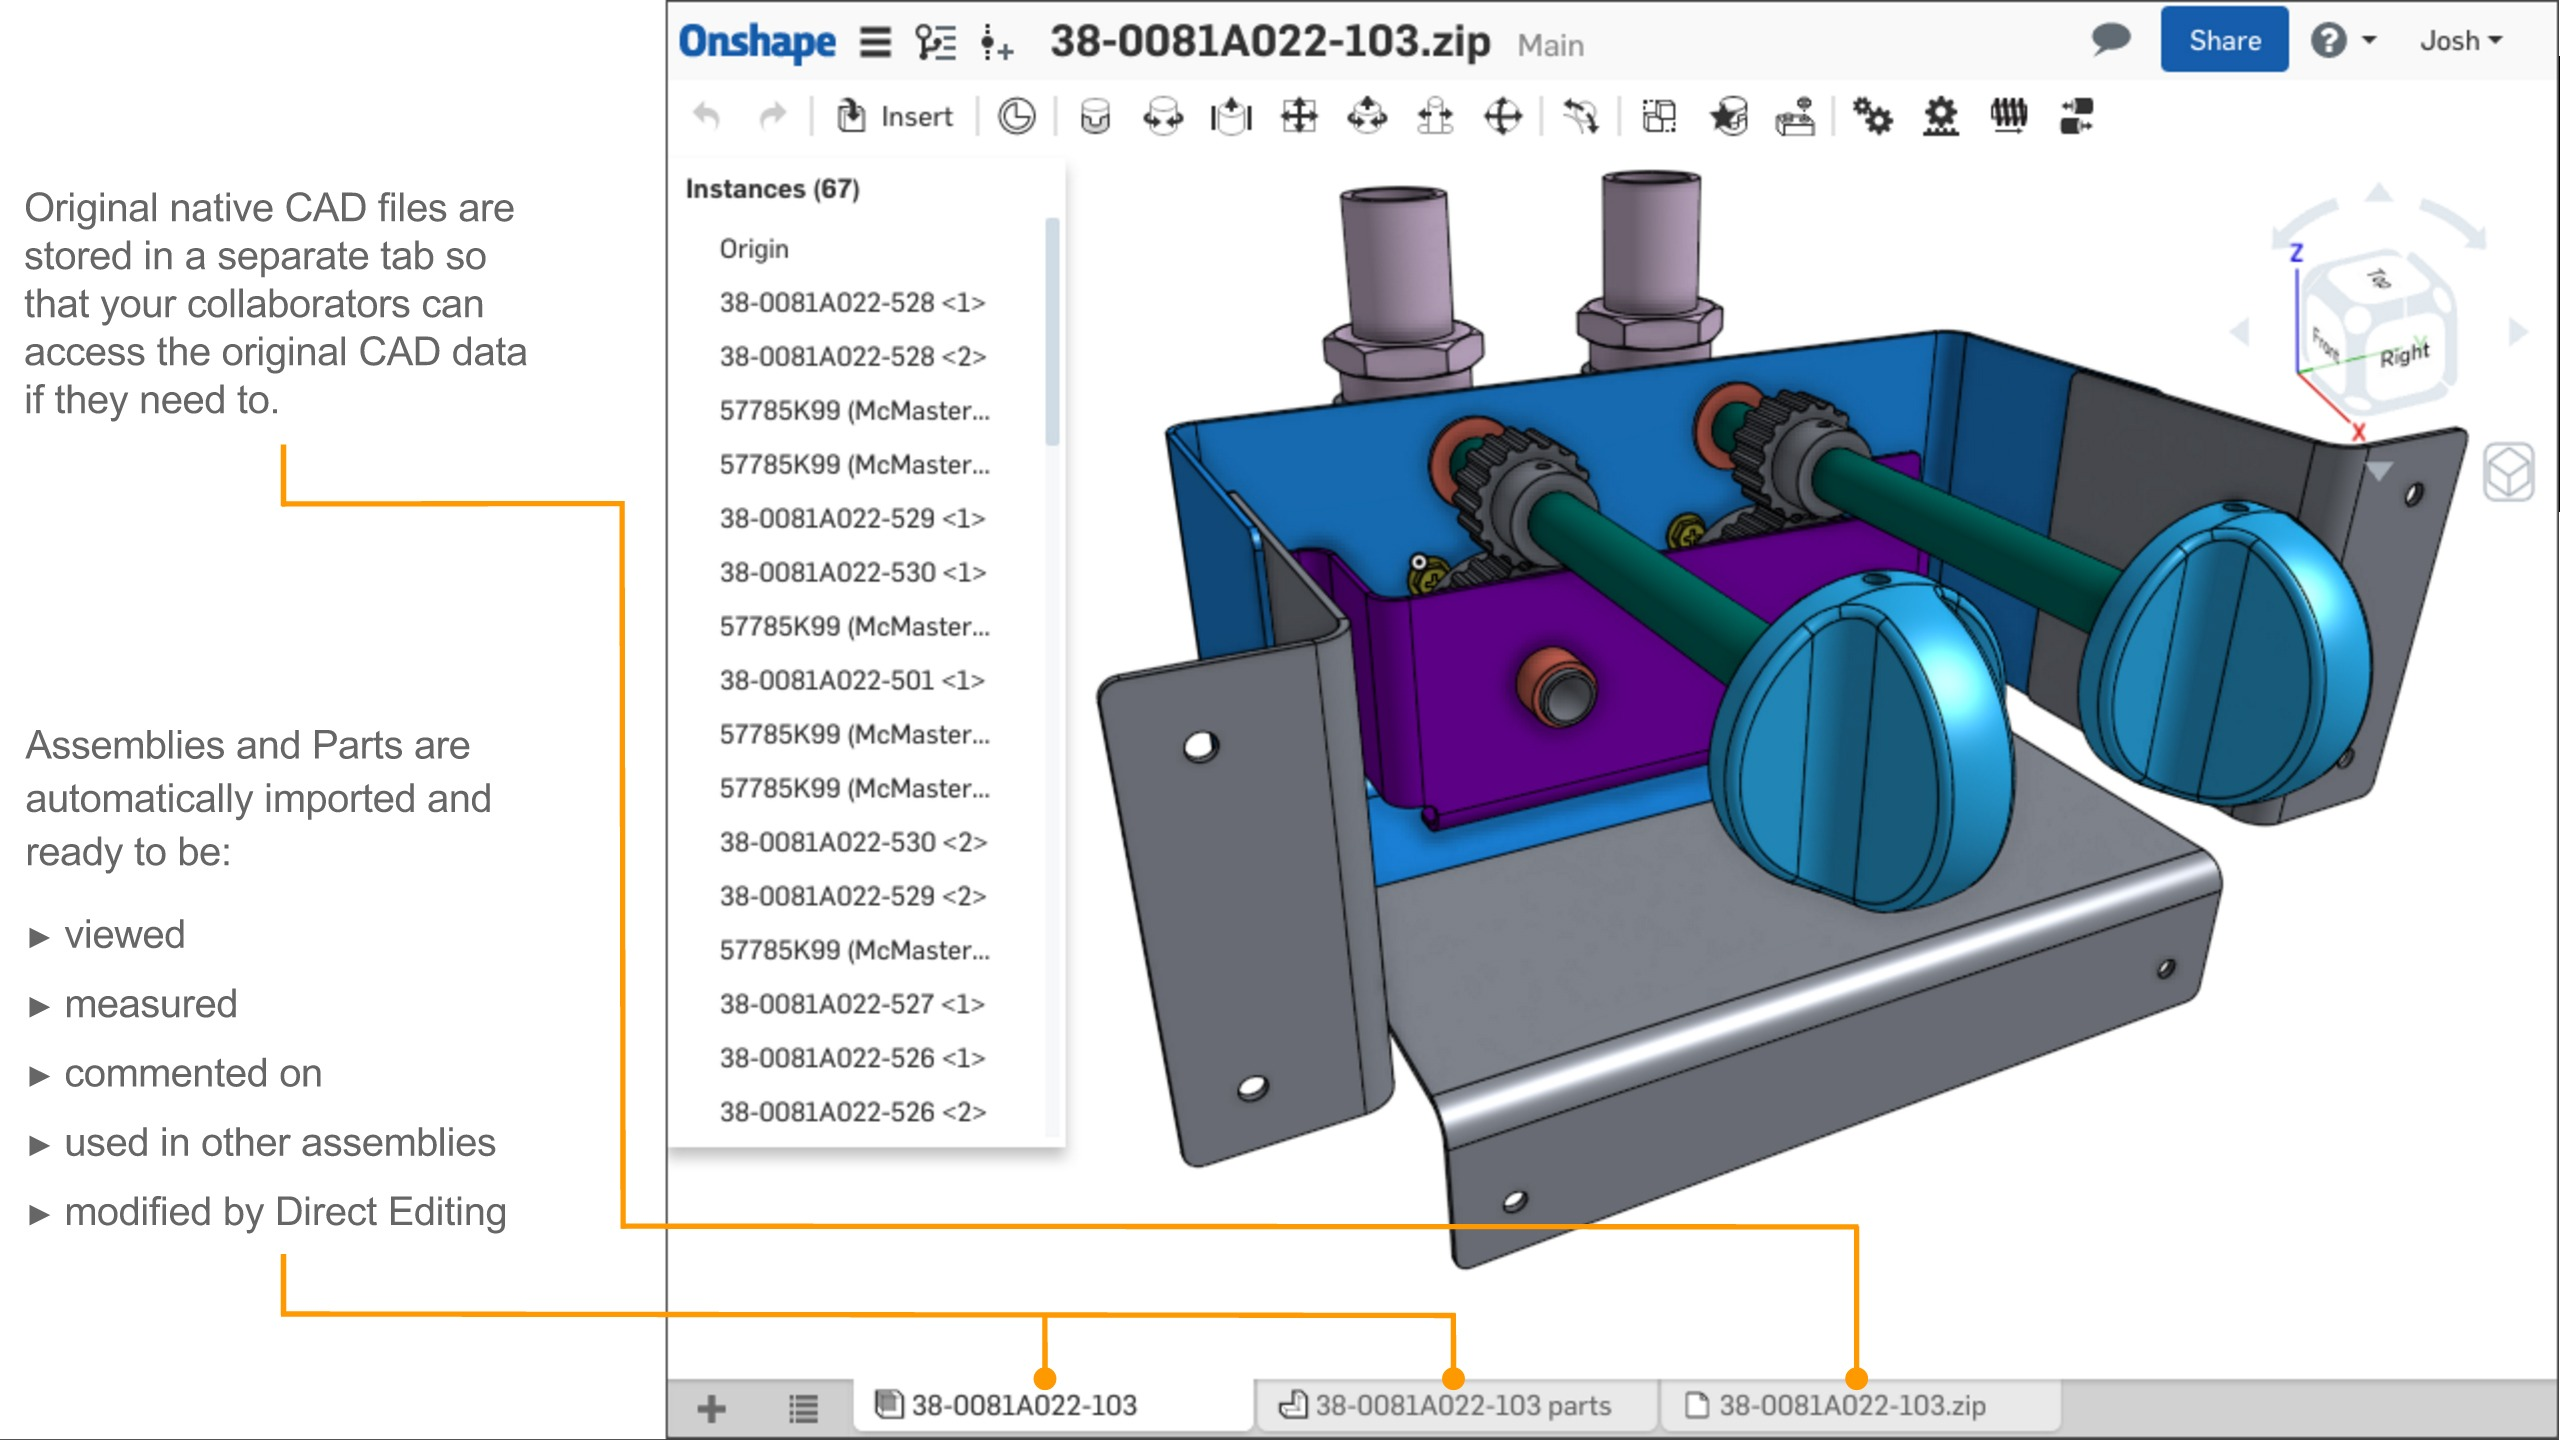 onshape-pack-and-go-import-01